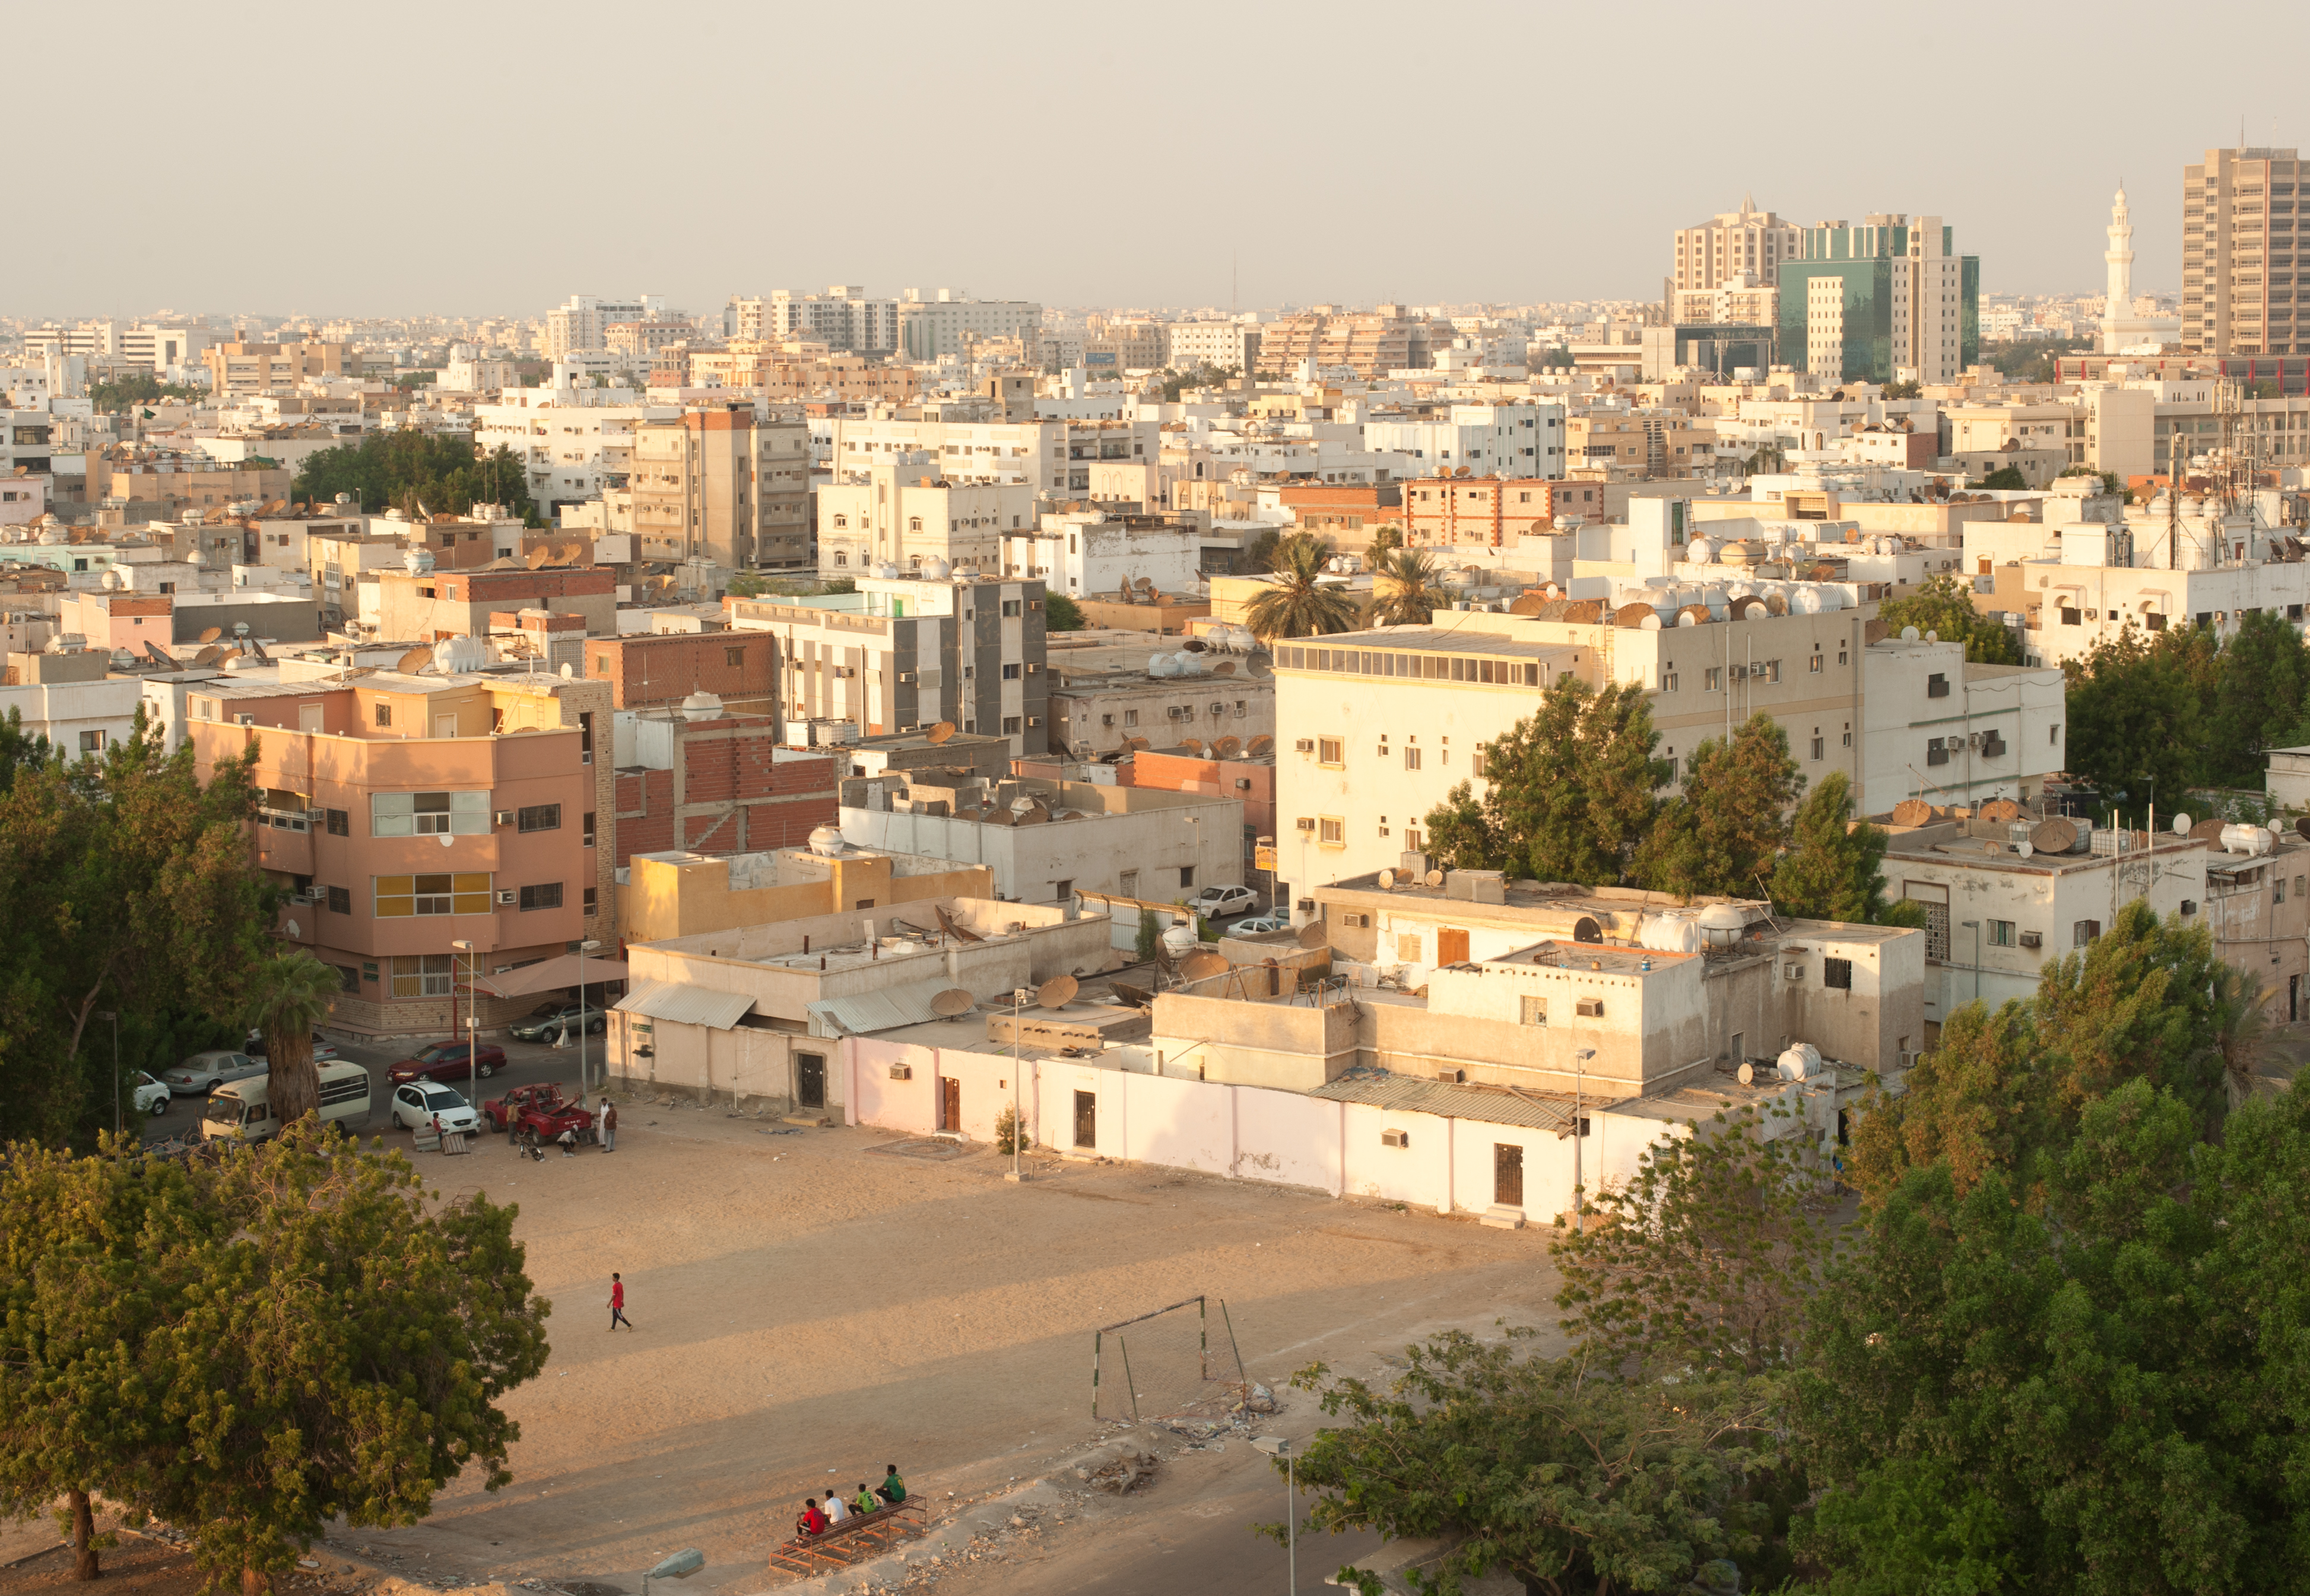 Downtown Jeddah, Saudi Arabia.